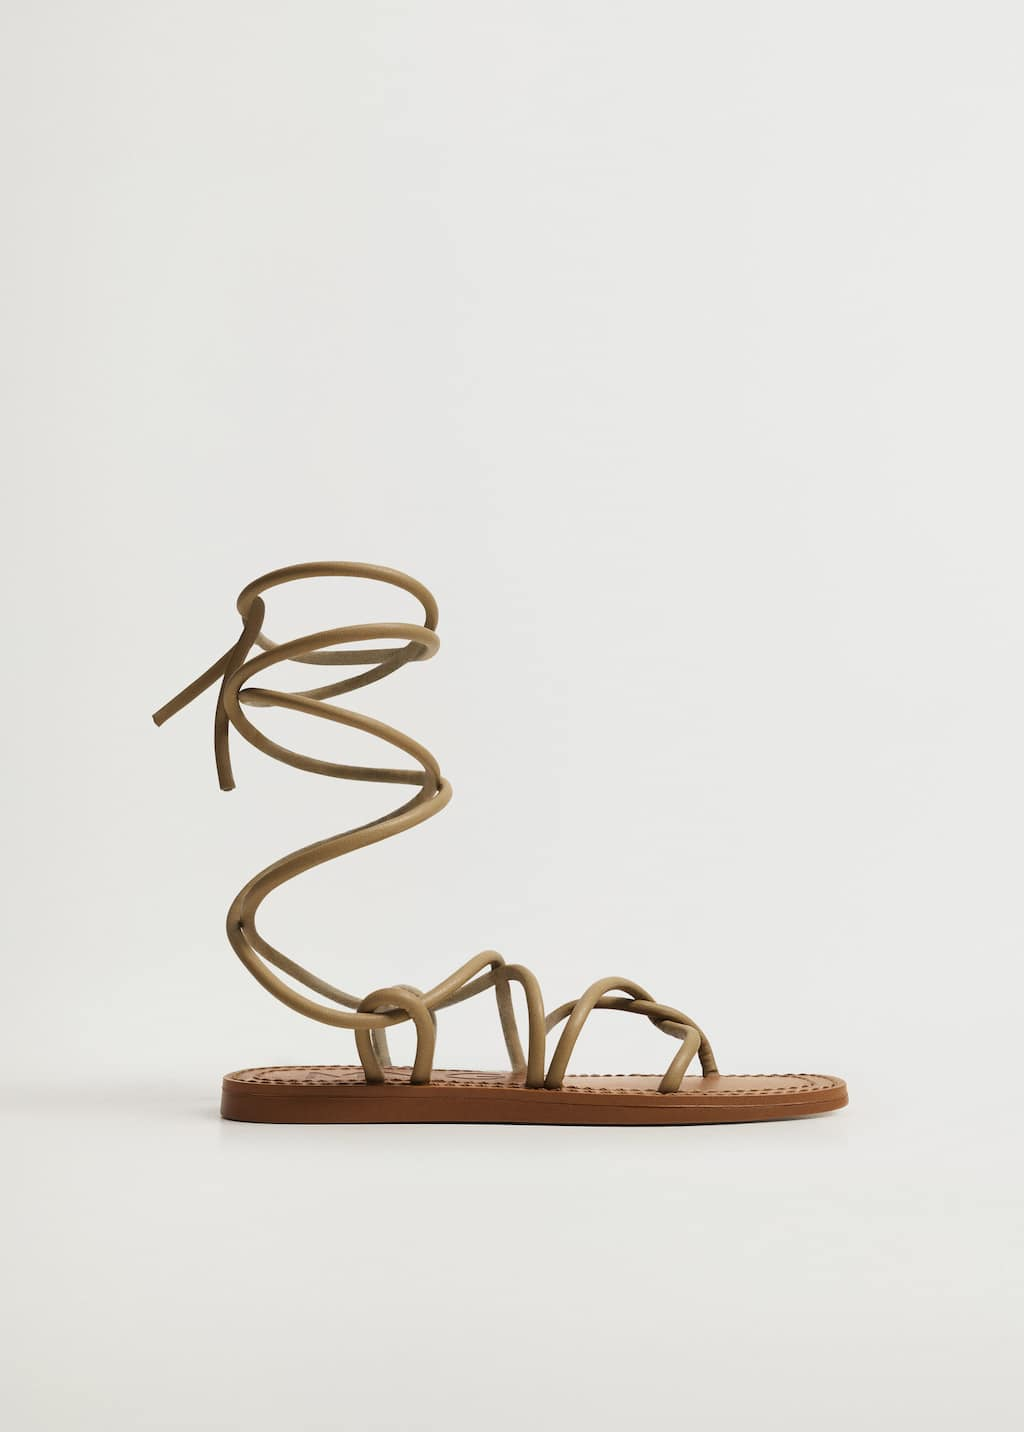 Criss-cross straps sandals - Article without model